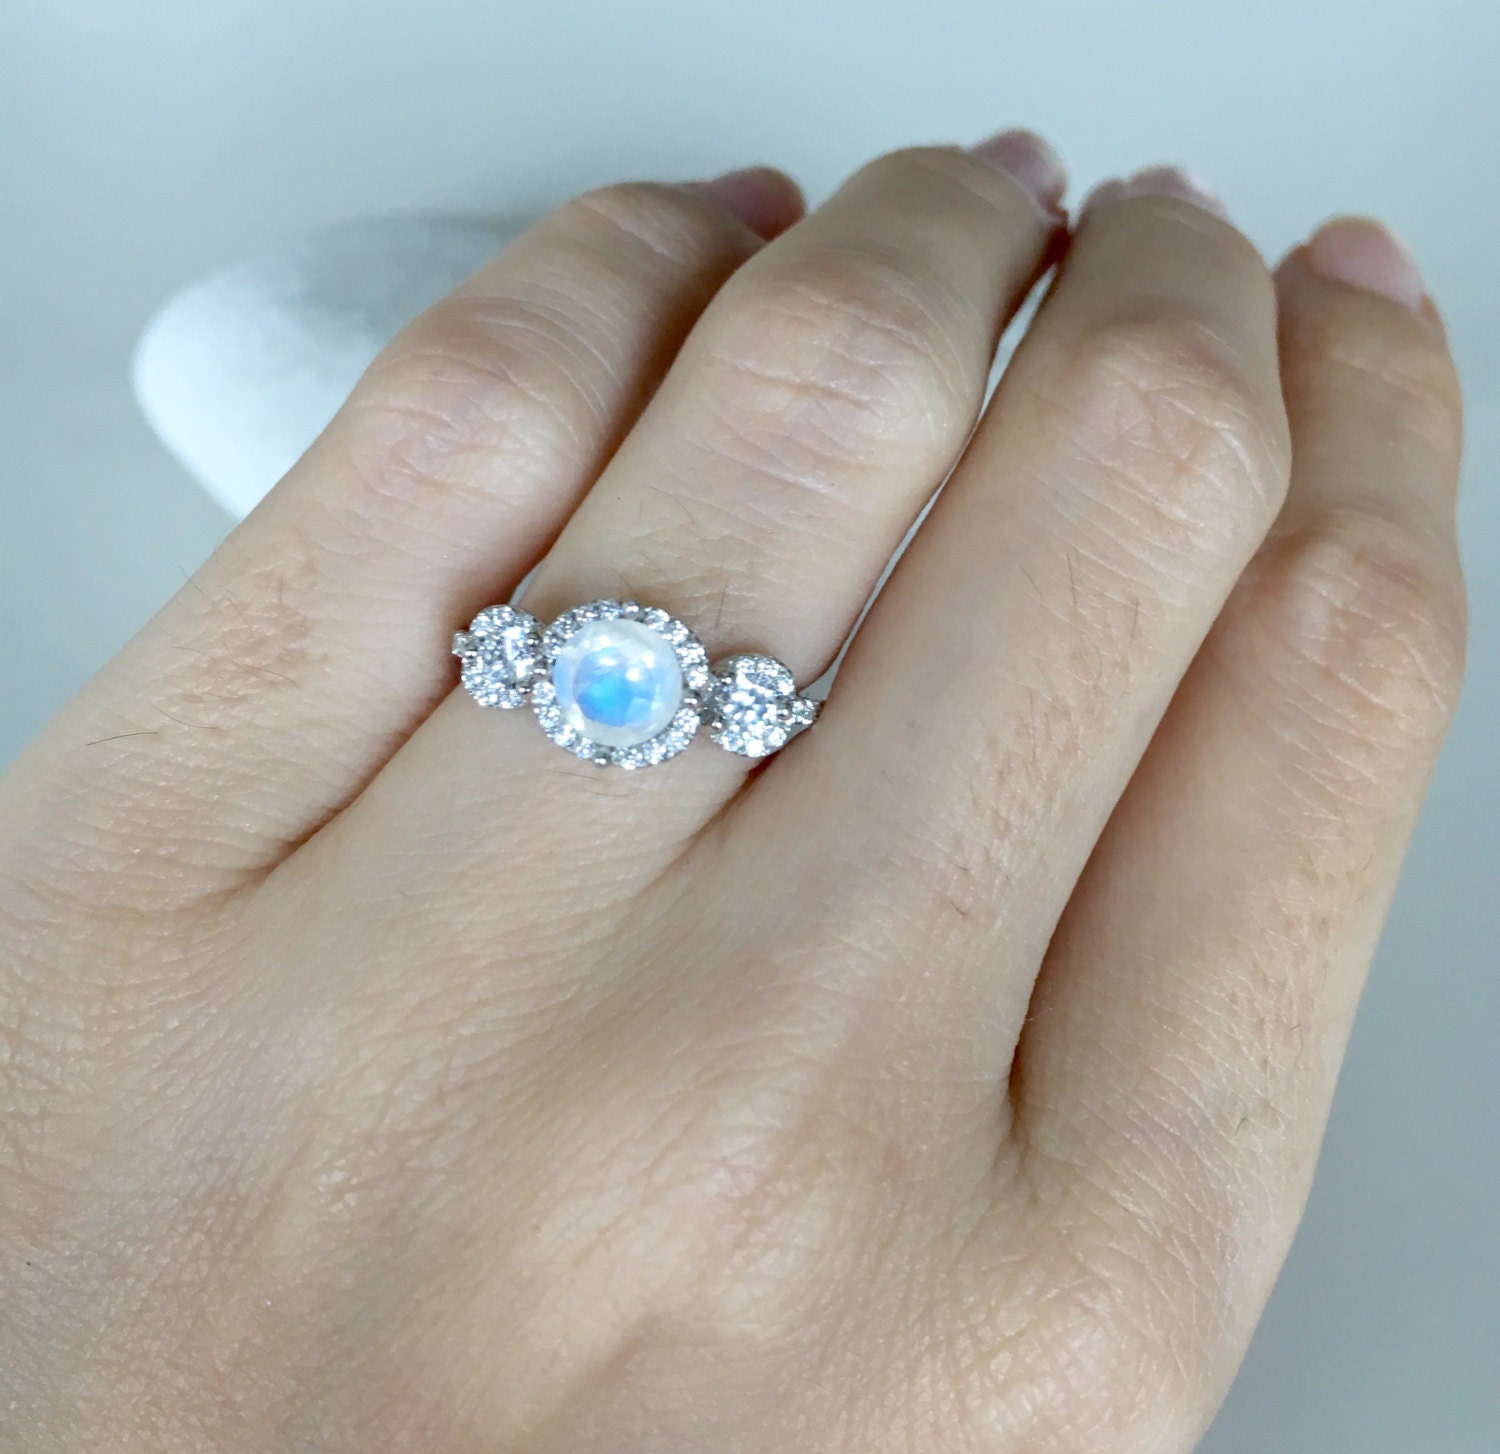 item three diamond and with aquamarine image stone pearl white birthstone sterling rings reeds created june ring oval silver freshwater cultured sapphire of sku wedding